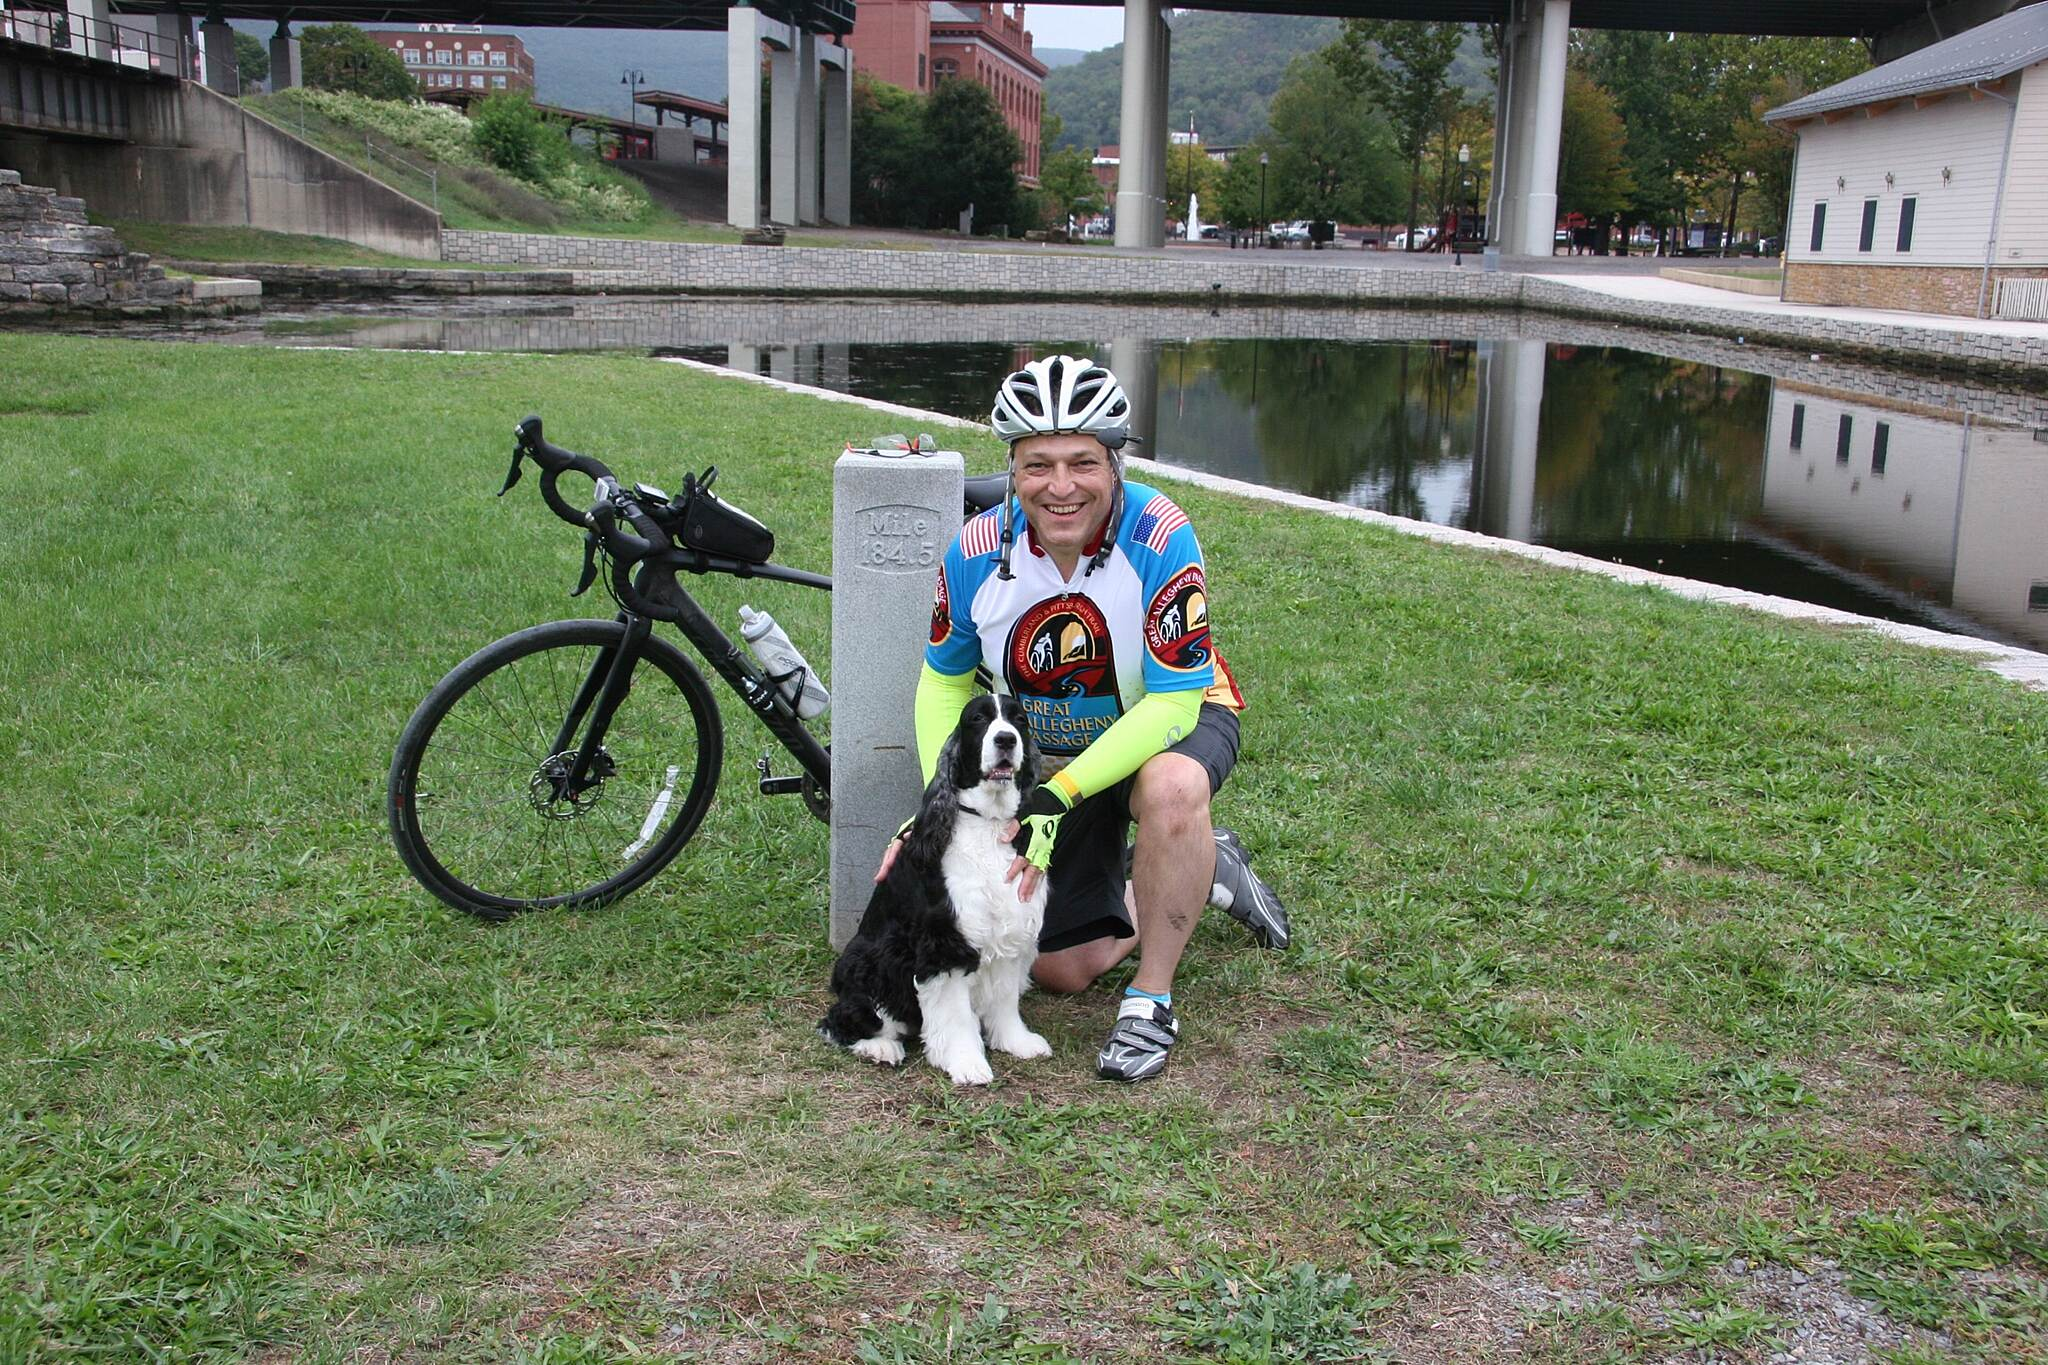 Chesapeake & Ohio Canal National Historical Park With Atticus at Mile 184.5.  Journey completed.